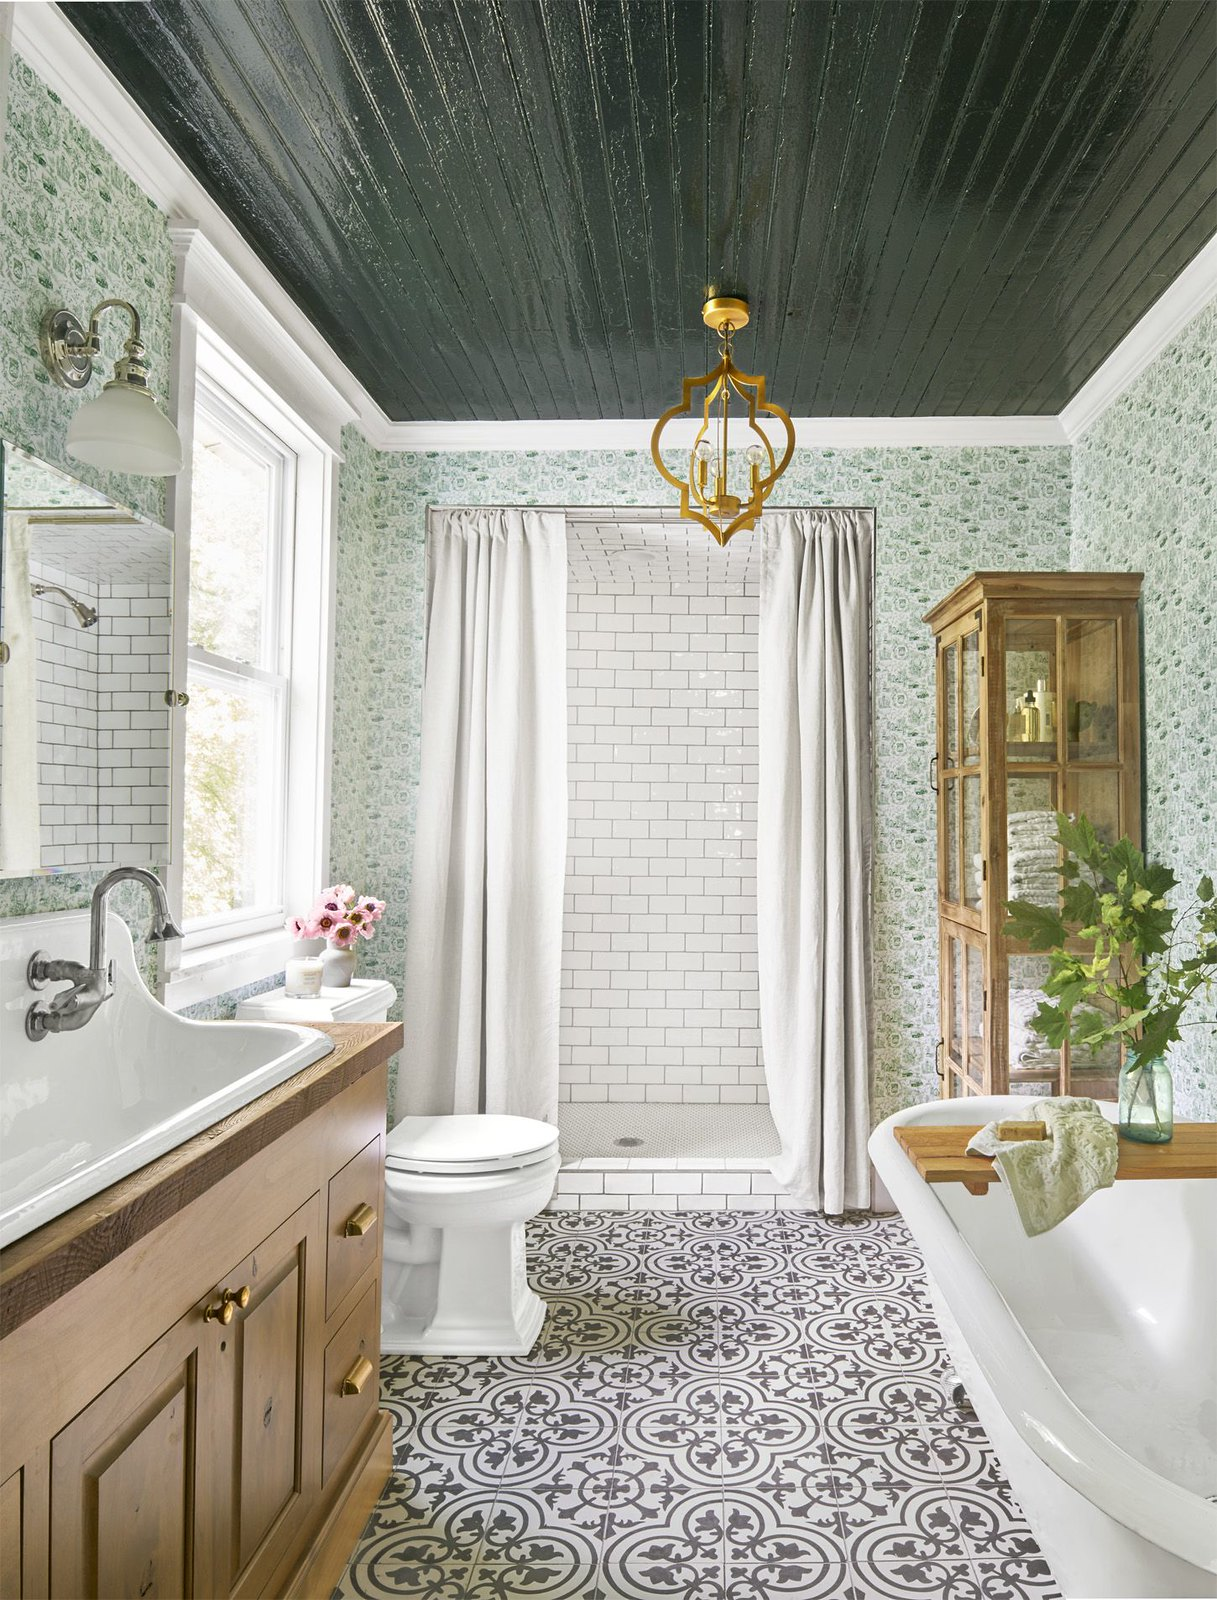 Southern 19th Century Bathroom Renovation | Green Floral Wallpaper | Black White Tiled Floor | Black Glossy Ceiling | Southern Charm Bathroom